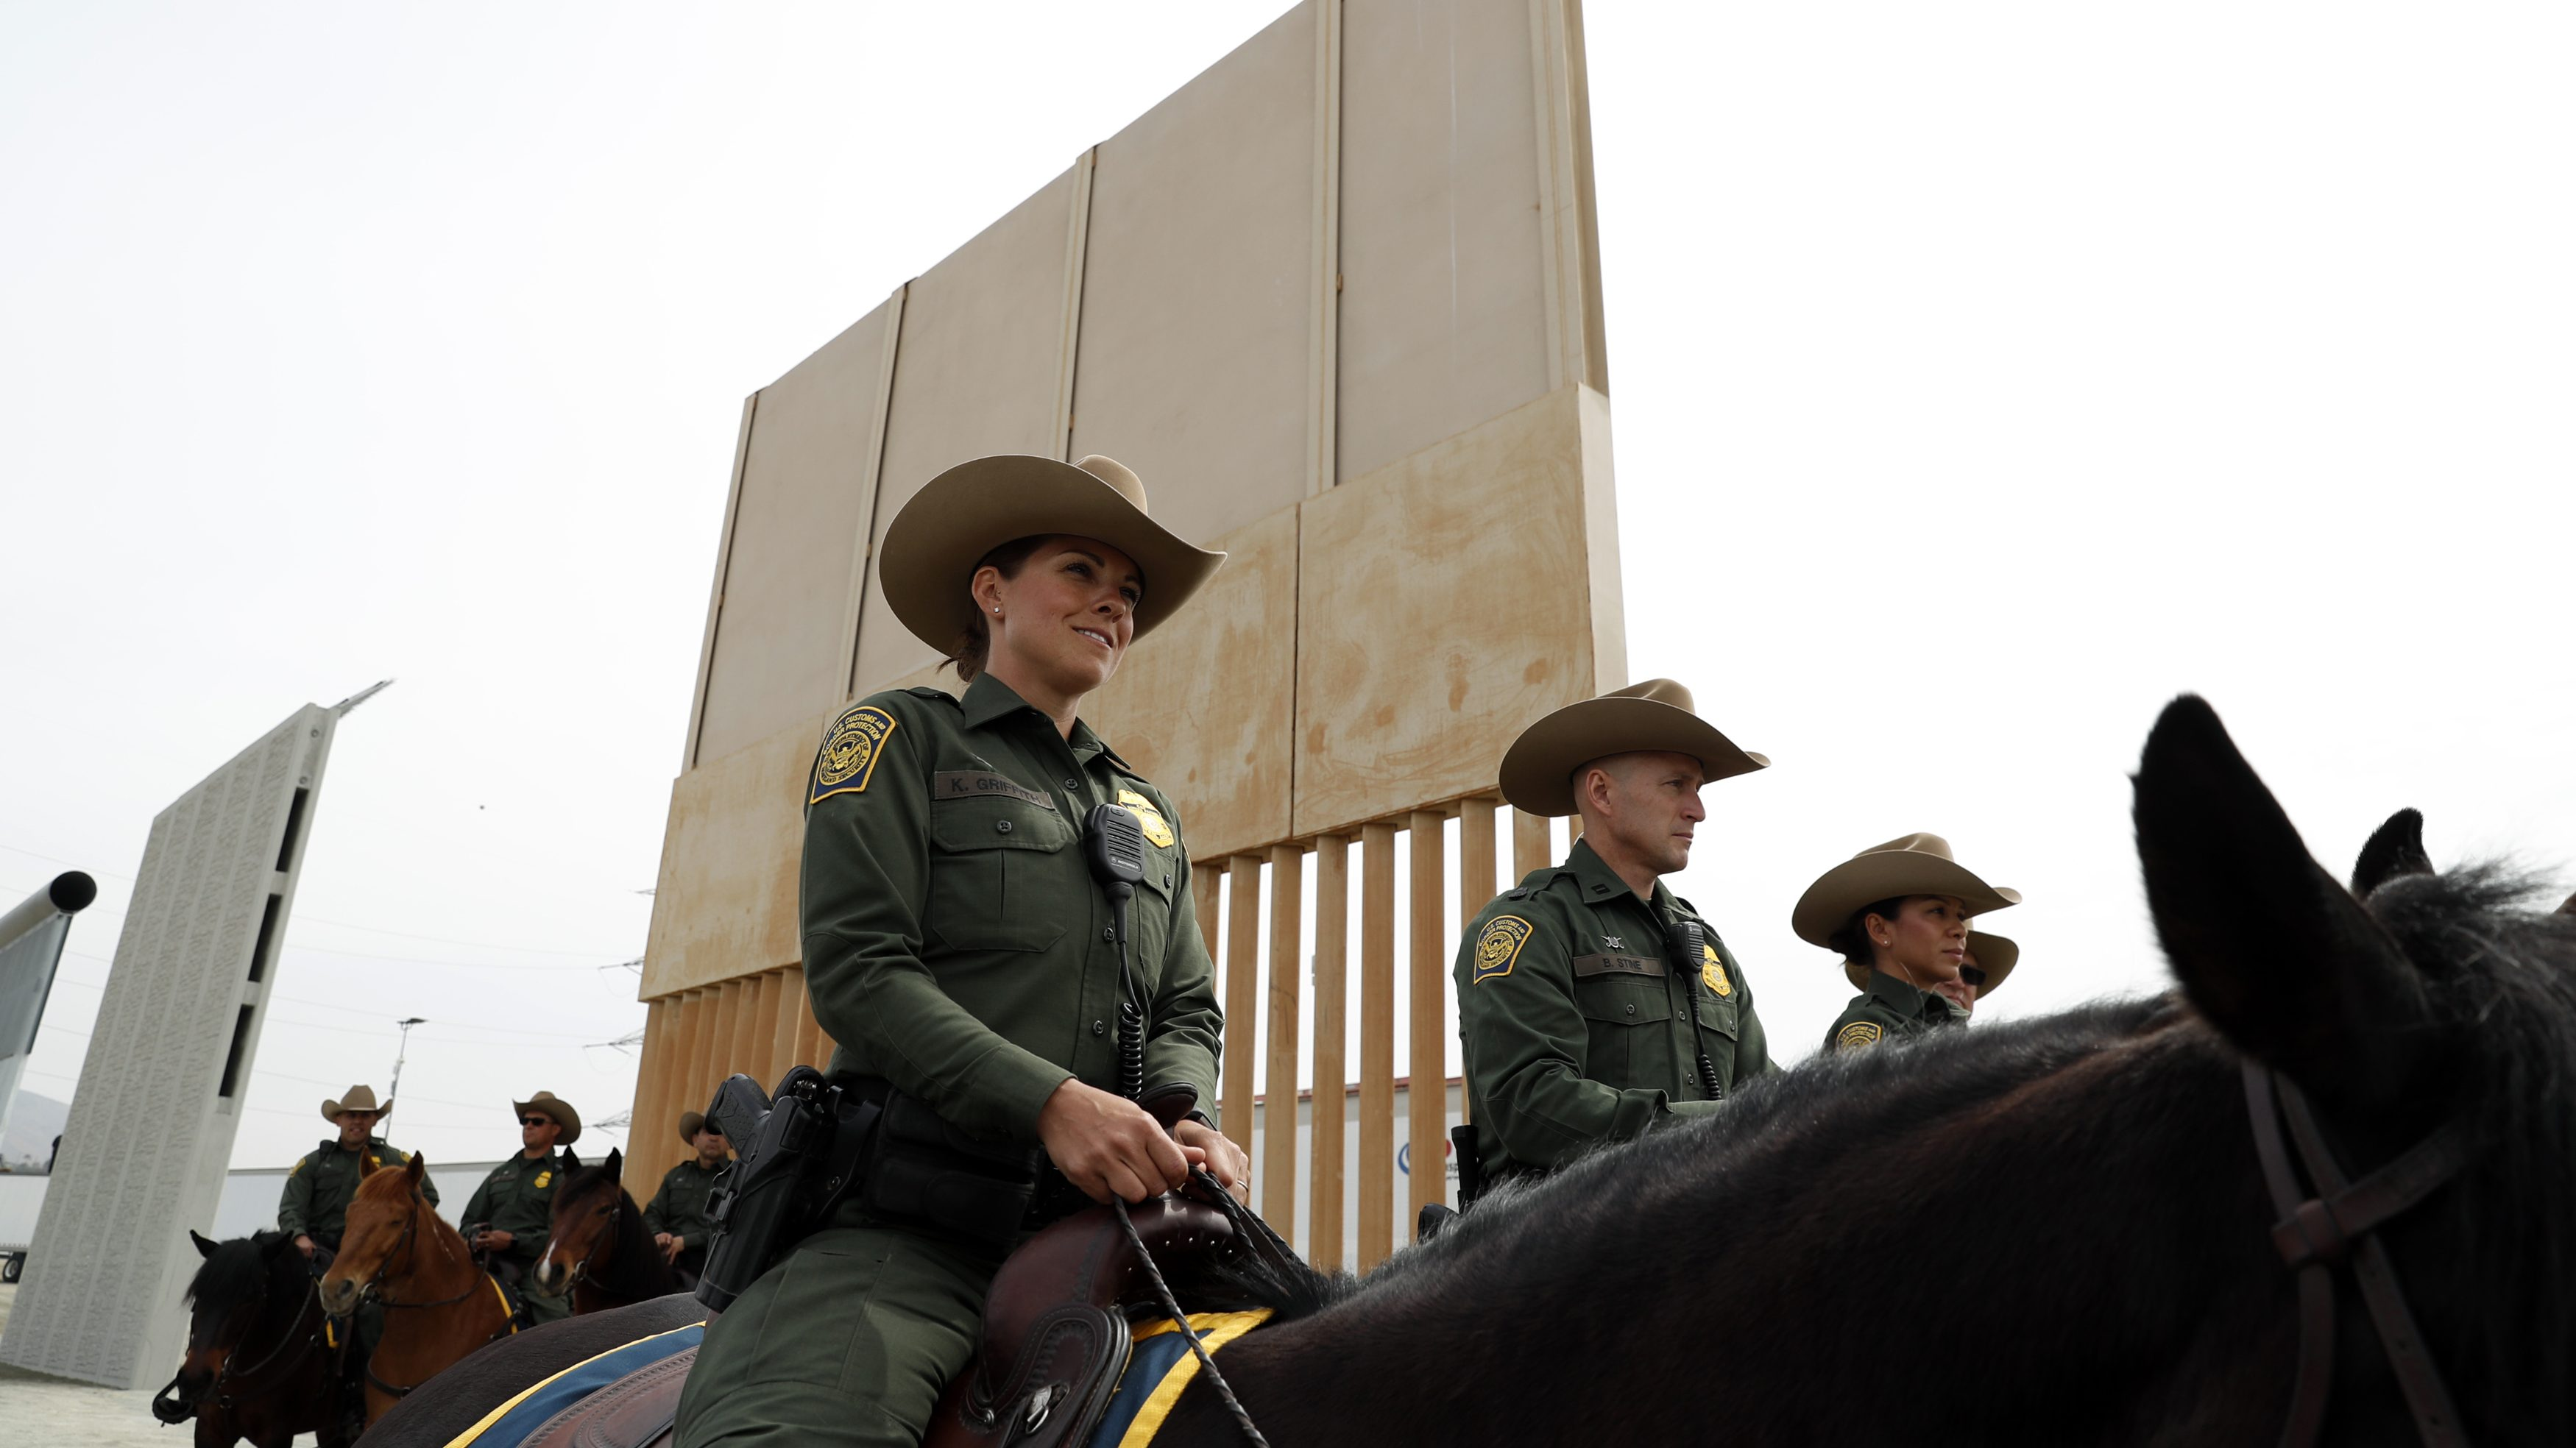 U.S. Customs and Border Protection Border Patrol Agents sit on horseback as U.S. President Donald Trump participated in a tour of U.S.-Mexico border wall prototypes